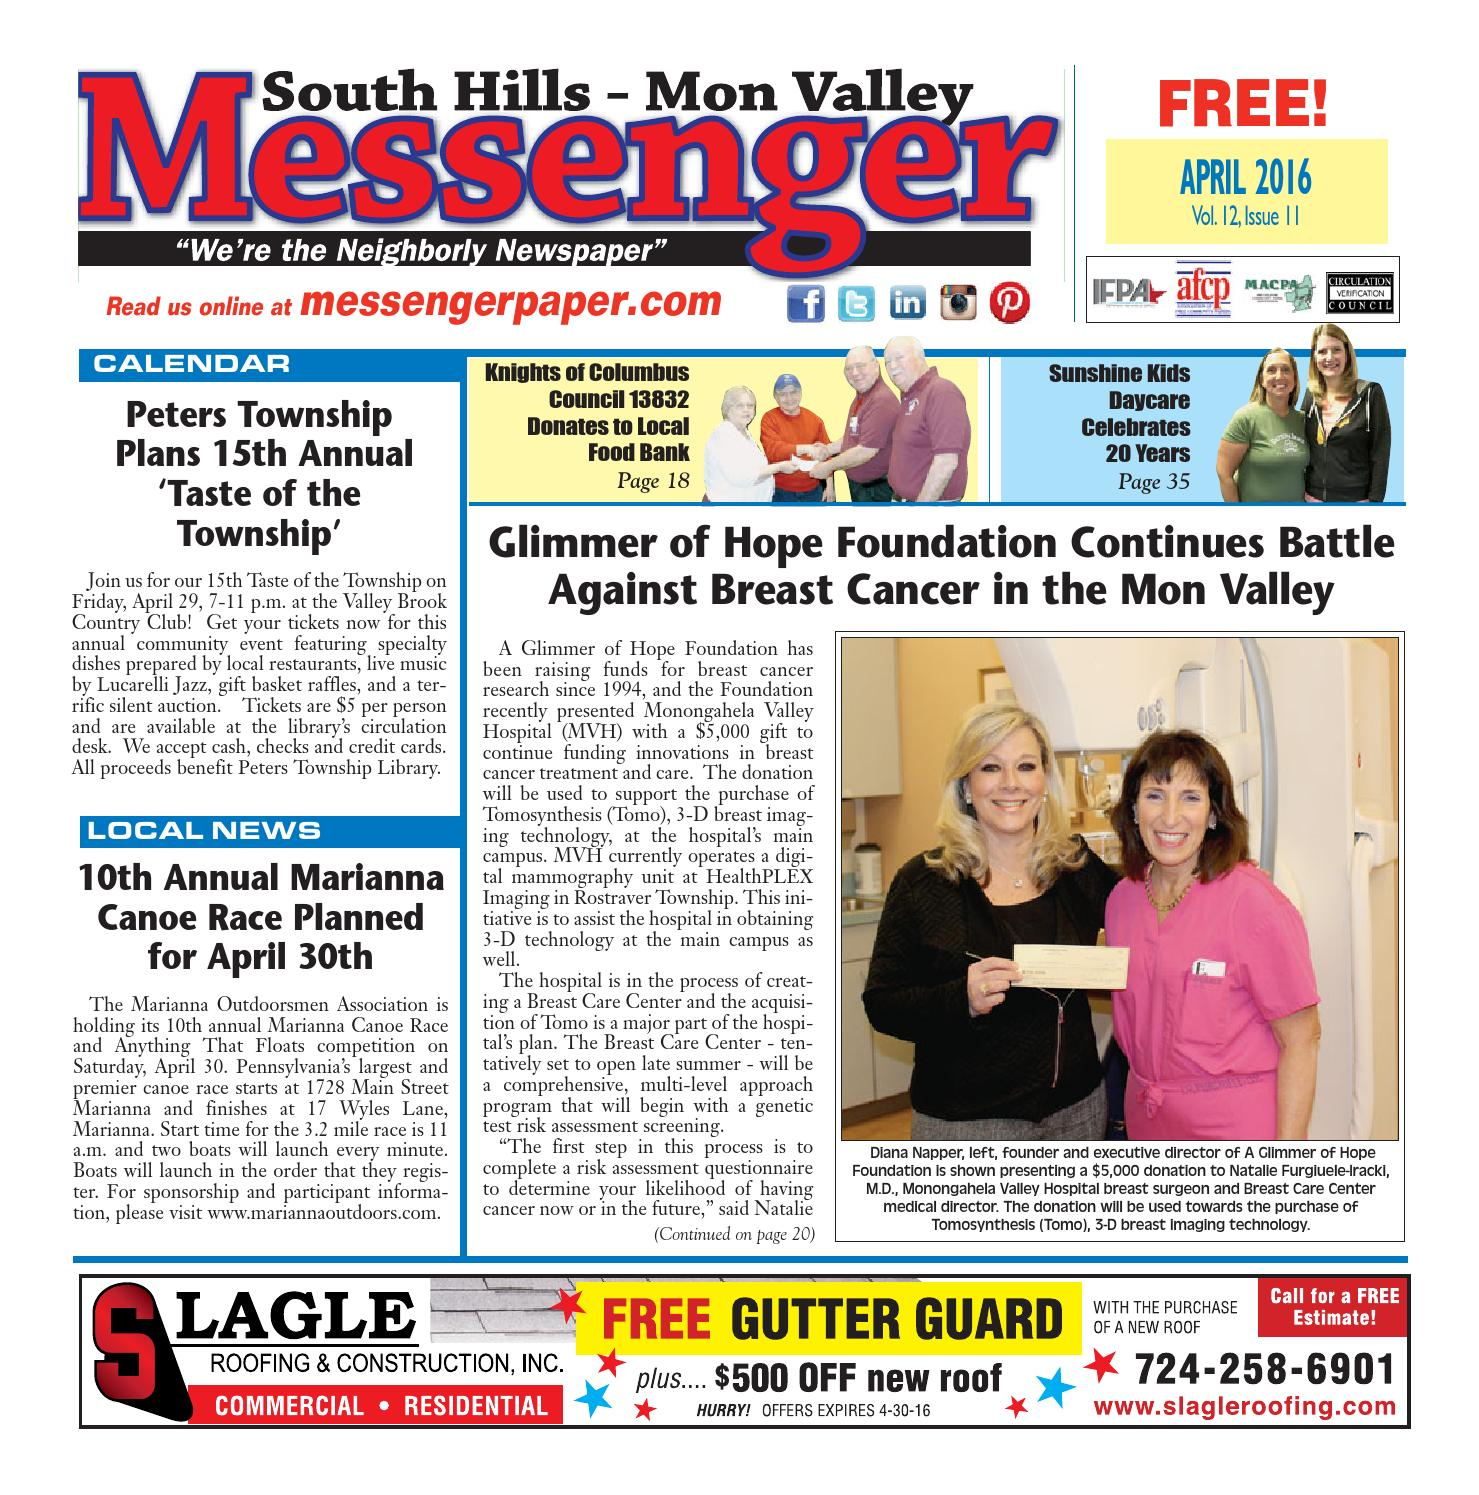 South hills mon valley messenger january 2015 by south hills mon south hills mon valley messenger april 2016 fandeluxe Choice Image